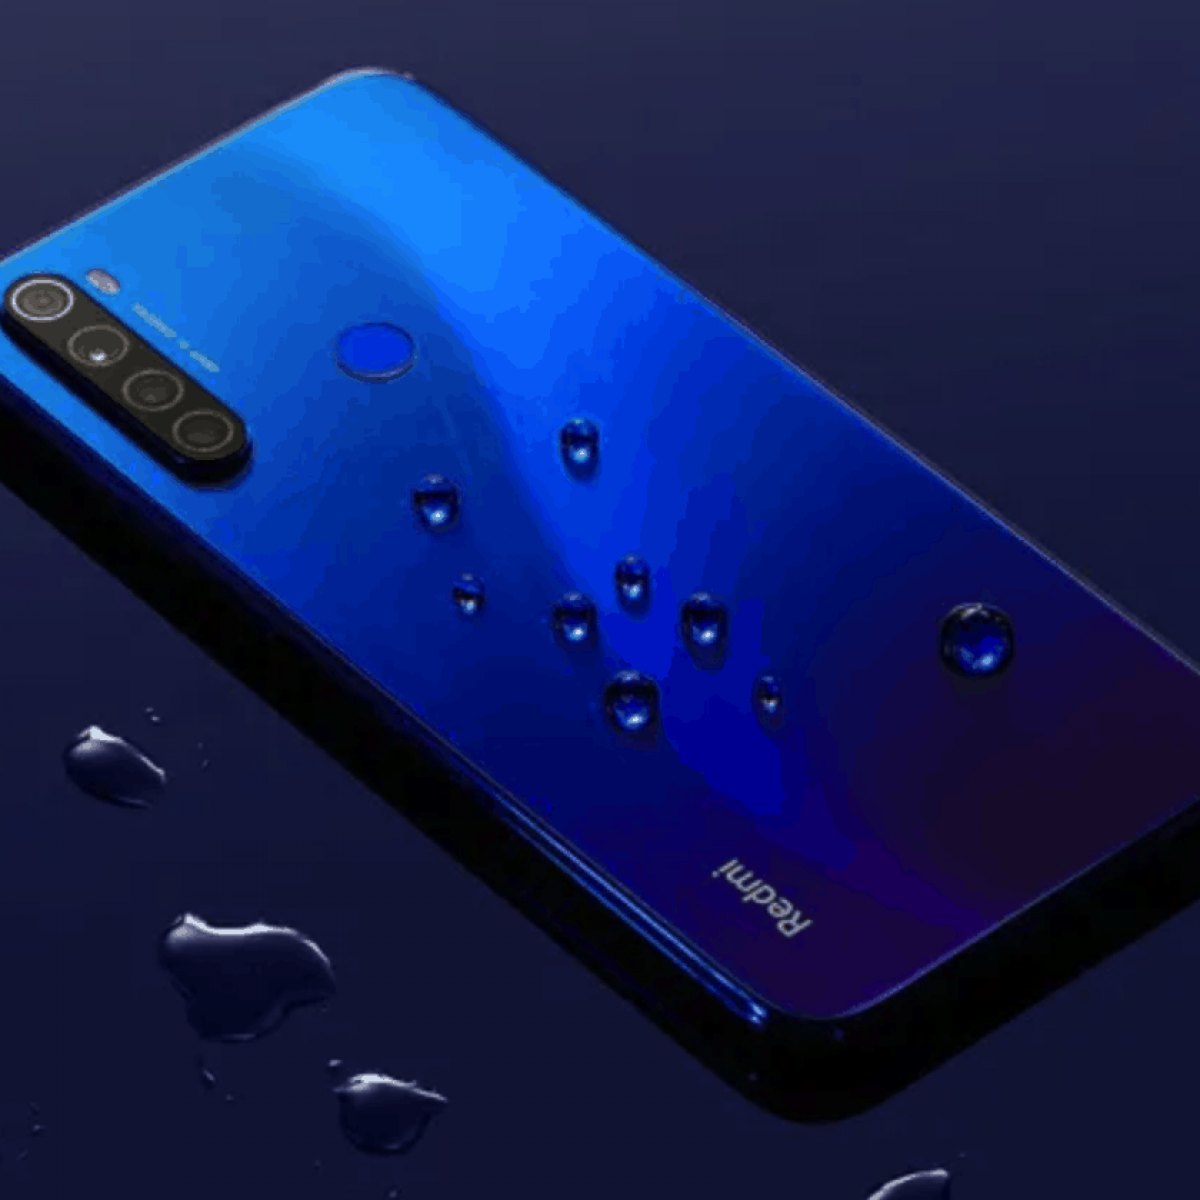 Redmi Note 8T Price, Renders, Features, Specifications, Release Date